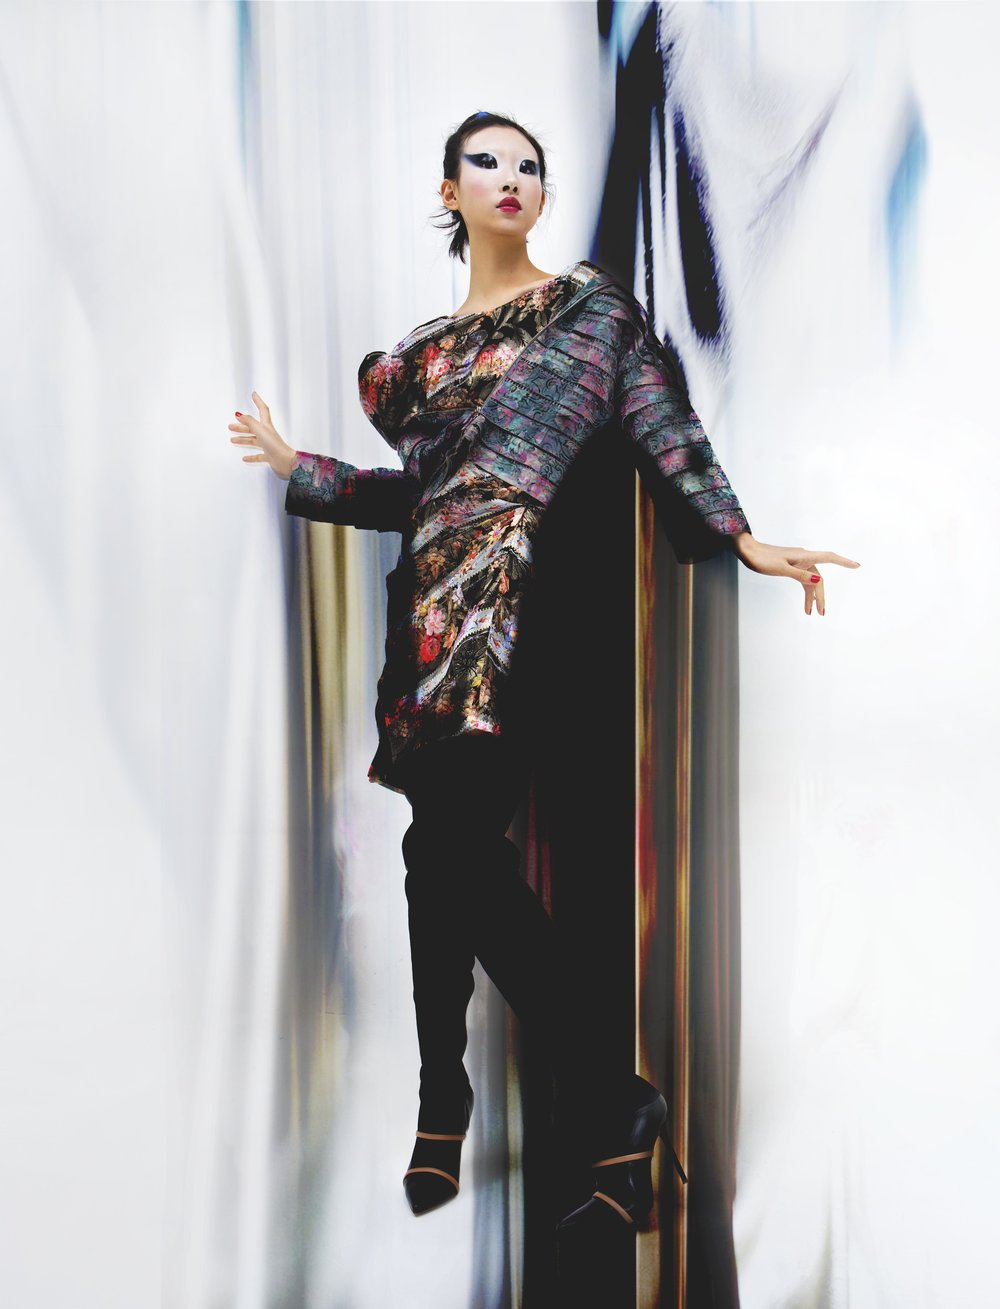 Nick Chan Stylist SCMP Style Magazine Chinese opera Kabuki theatre Fashion Editorial 8.jpg